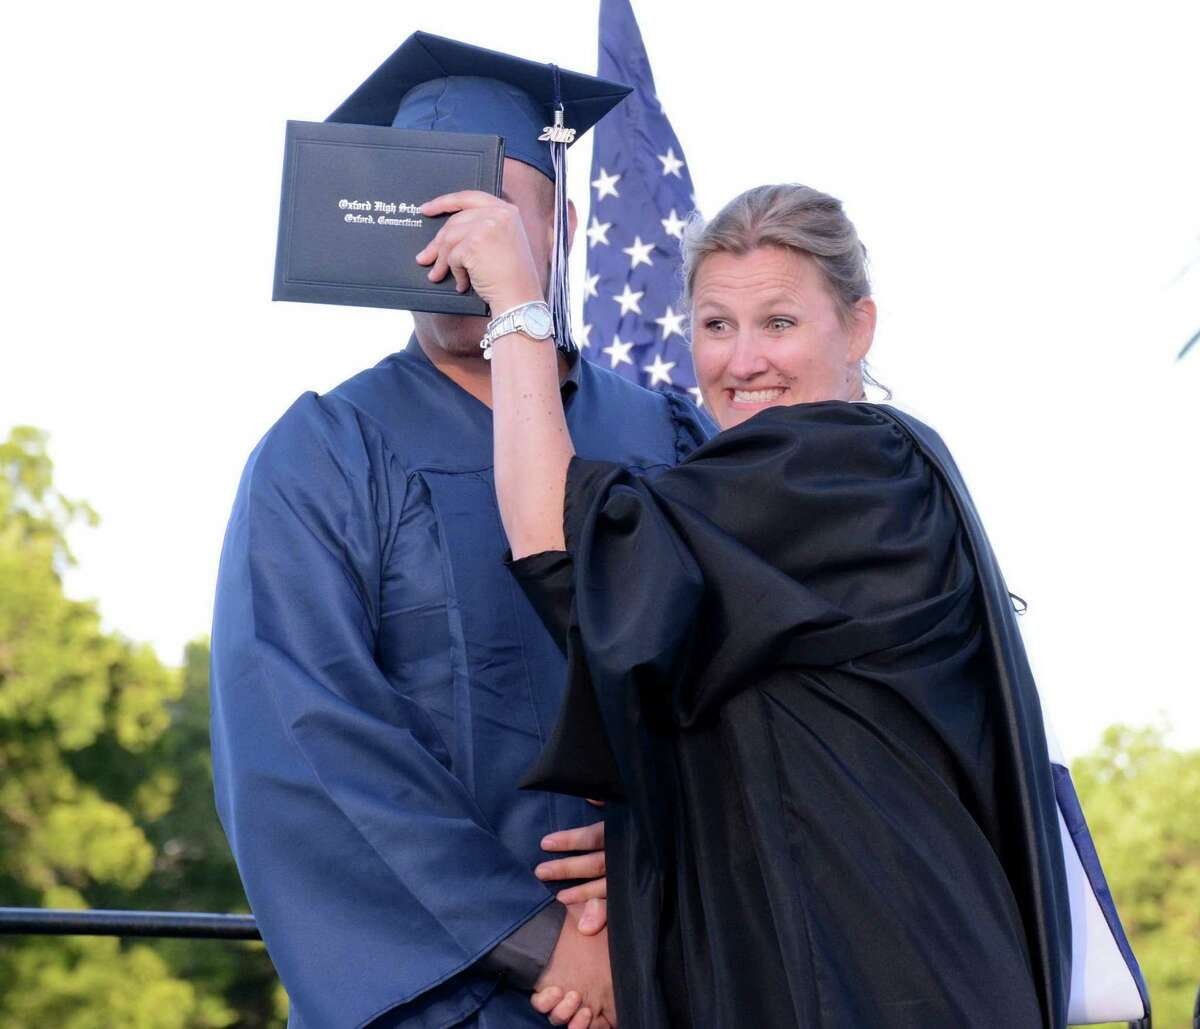 Oxfords Principal, Dorothy Potter, teases graduate Aaron Trelease as he receives his diploma during Oxford High Schools Graduation ceremony in Oxford, Conn. that was held on Friday June 10, 2016.